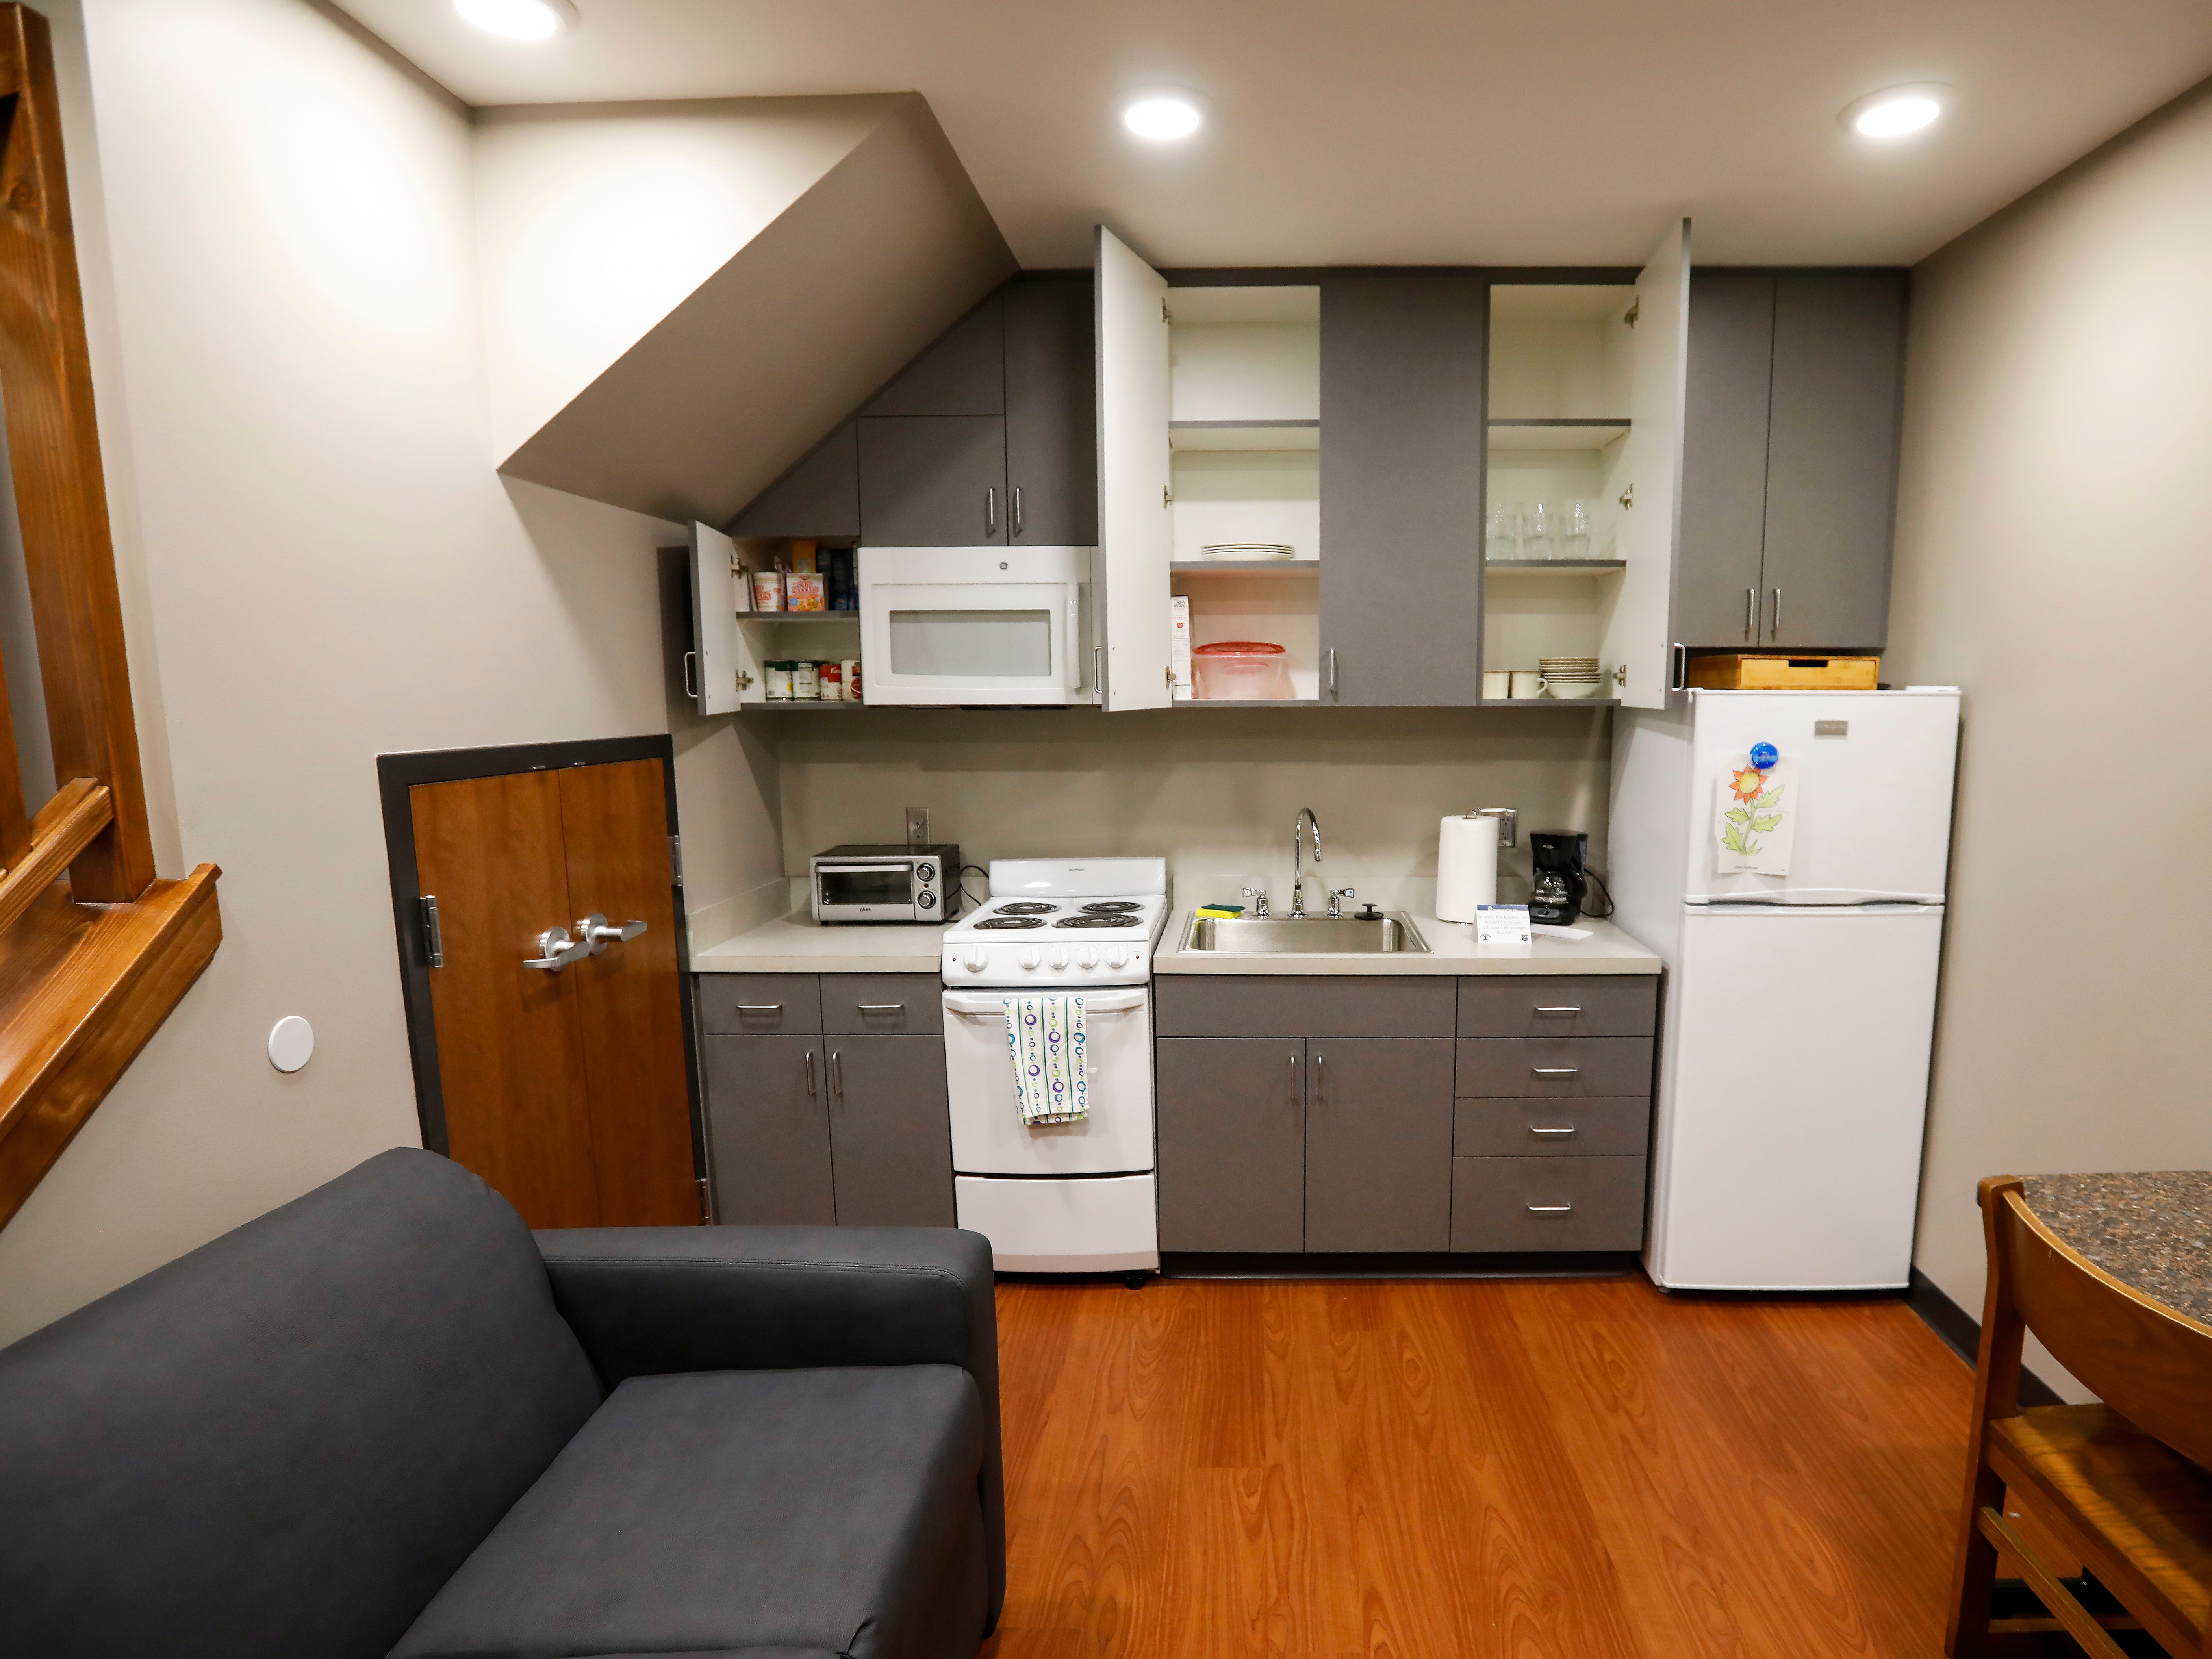 The kitchen inside one of the apartments at The Kitchen's new Emergency Shelter located at 1855 E. Chestnut Expressway.